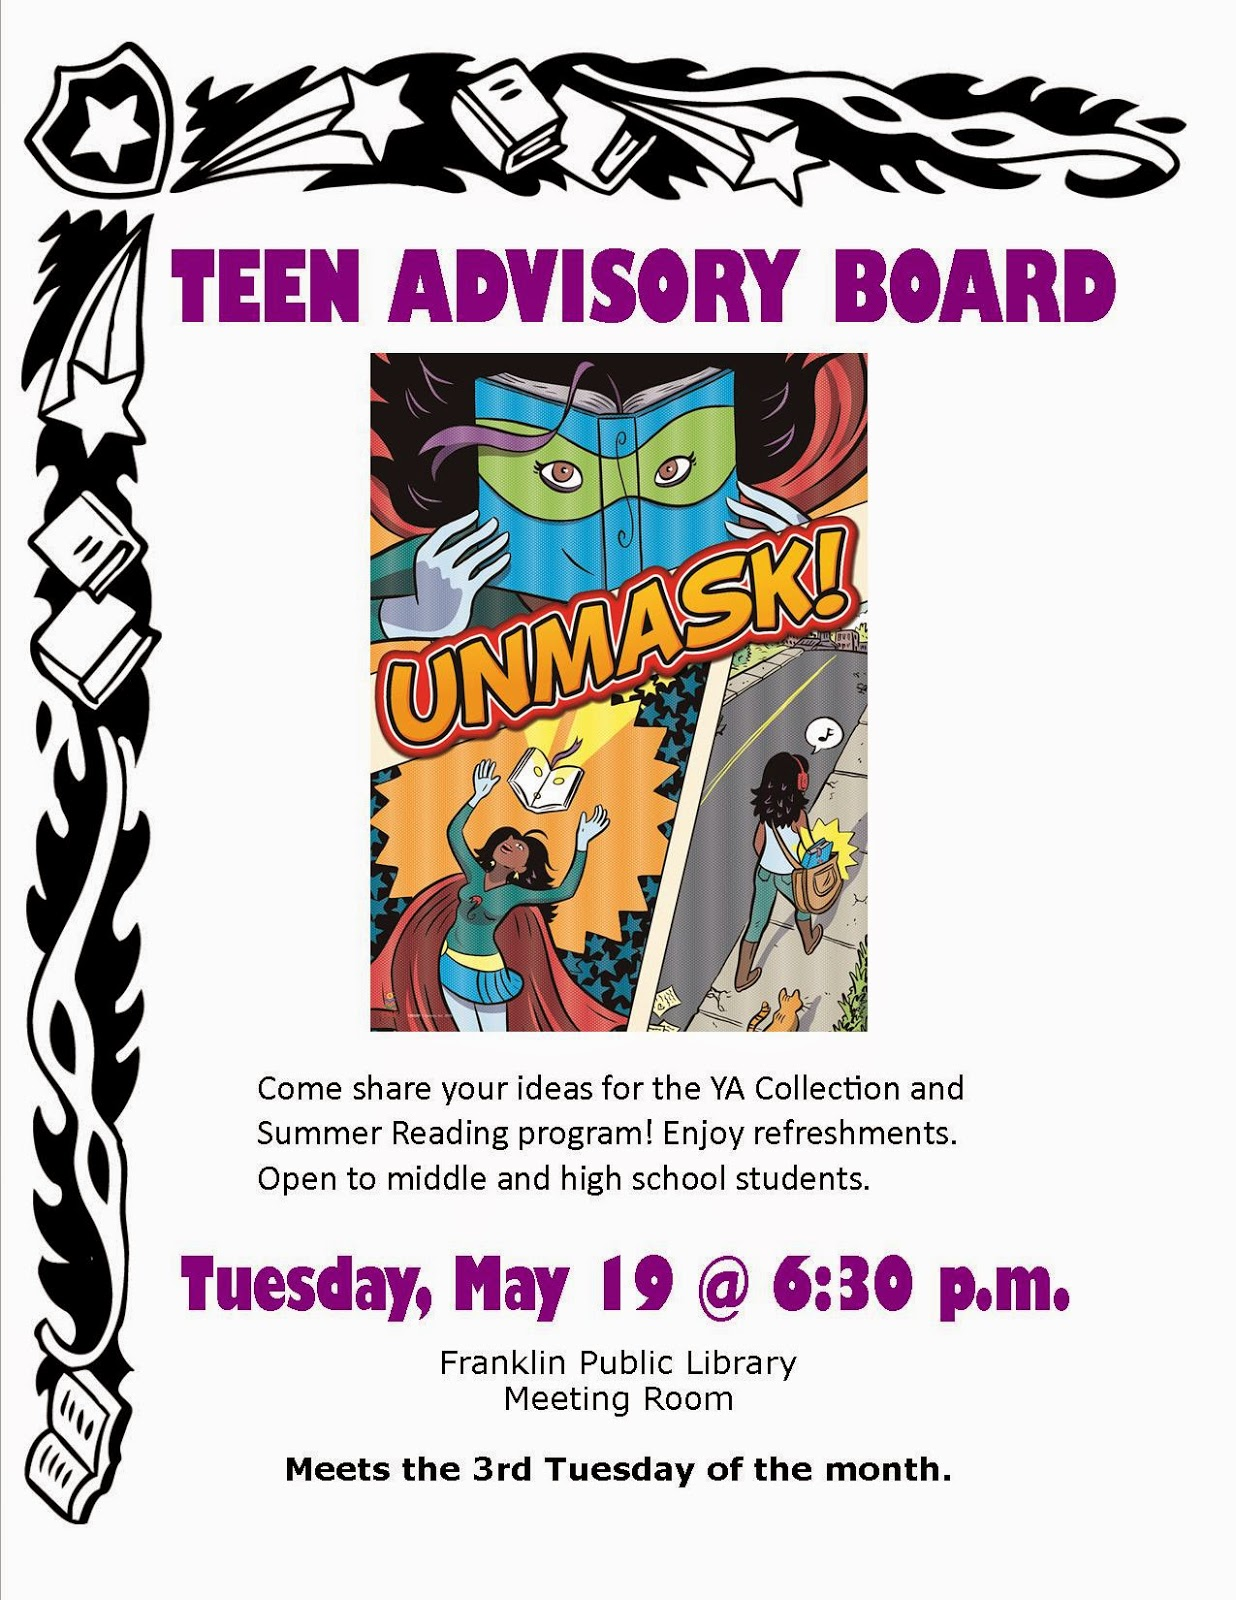 Library teen advisory board